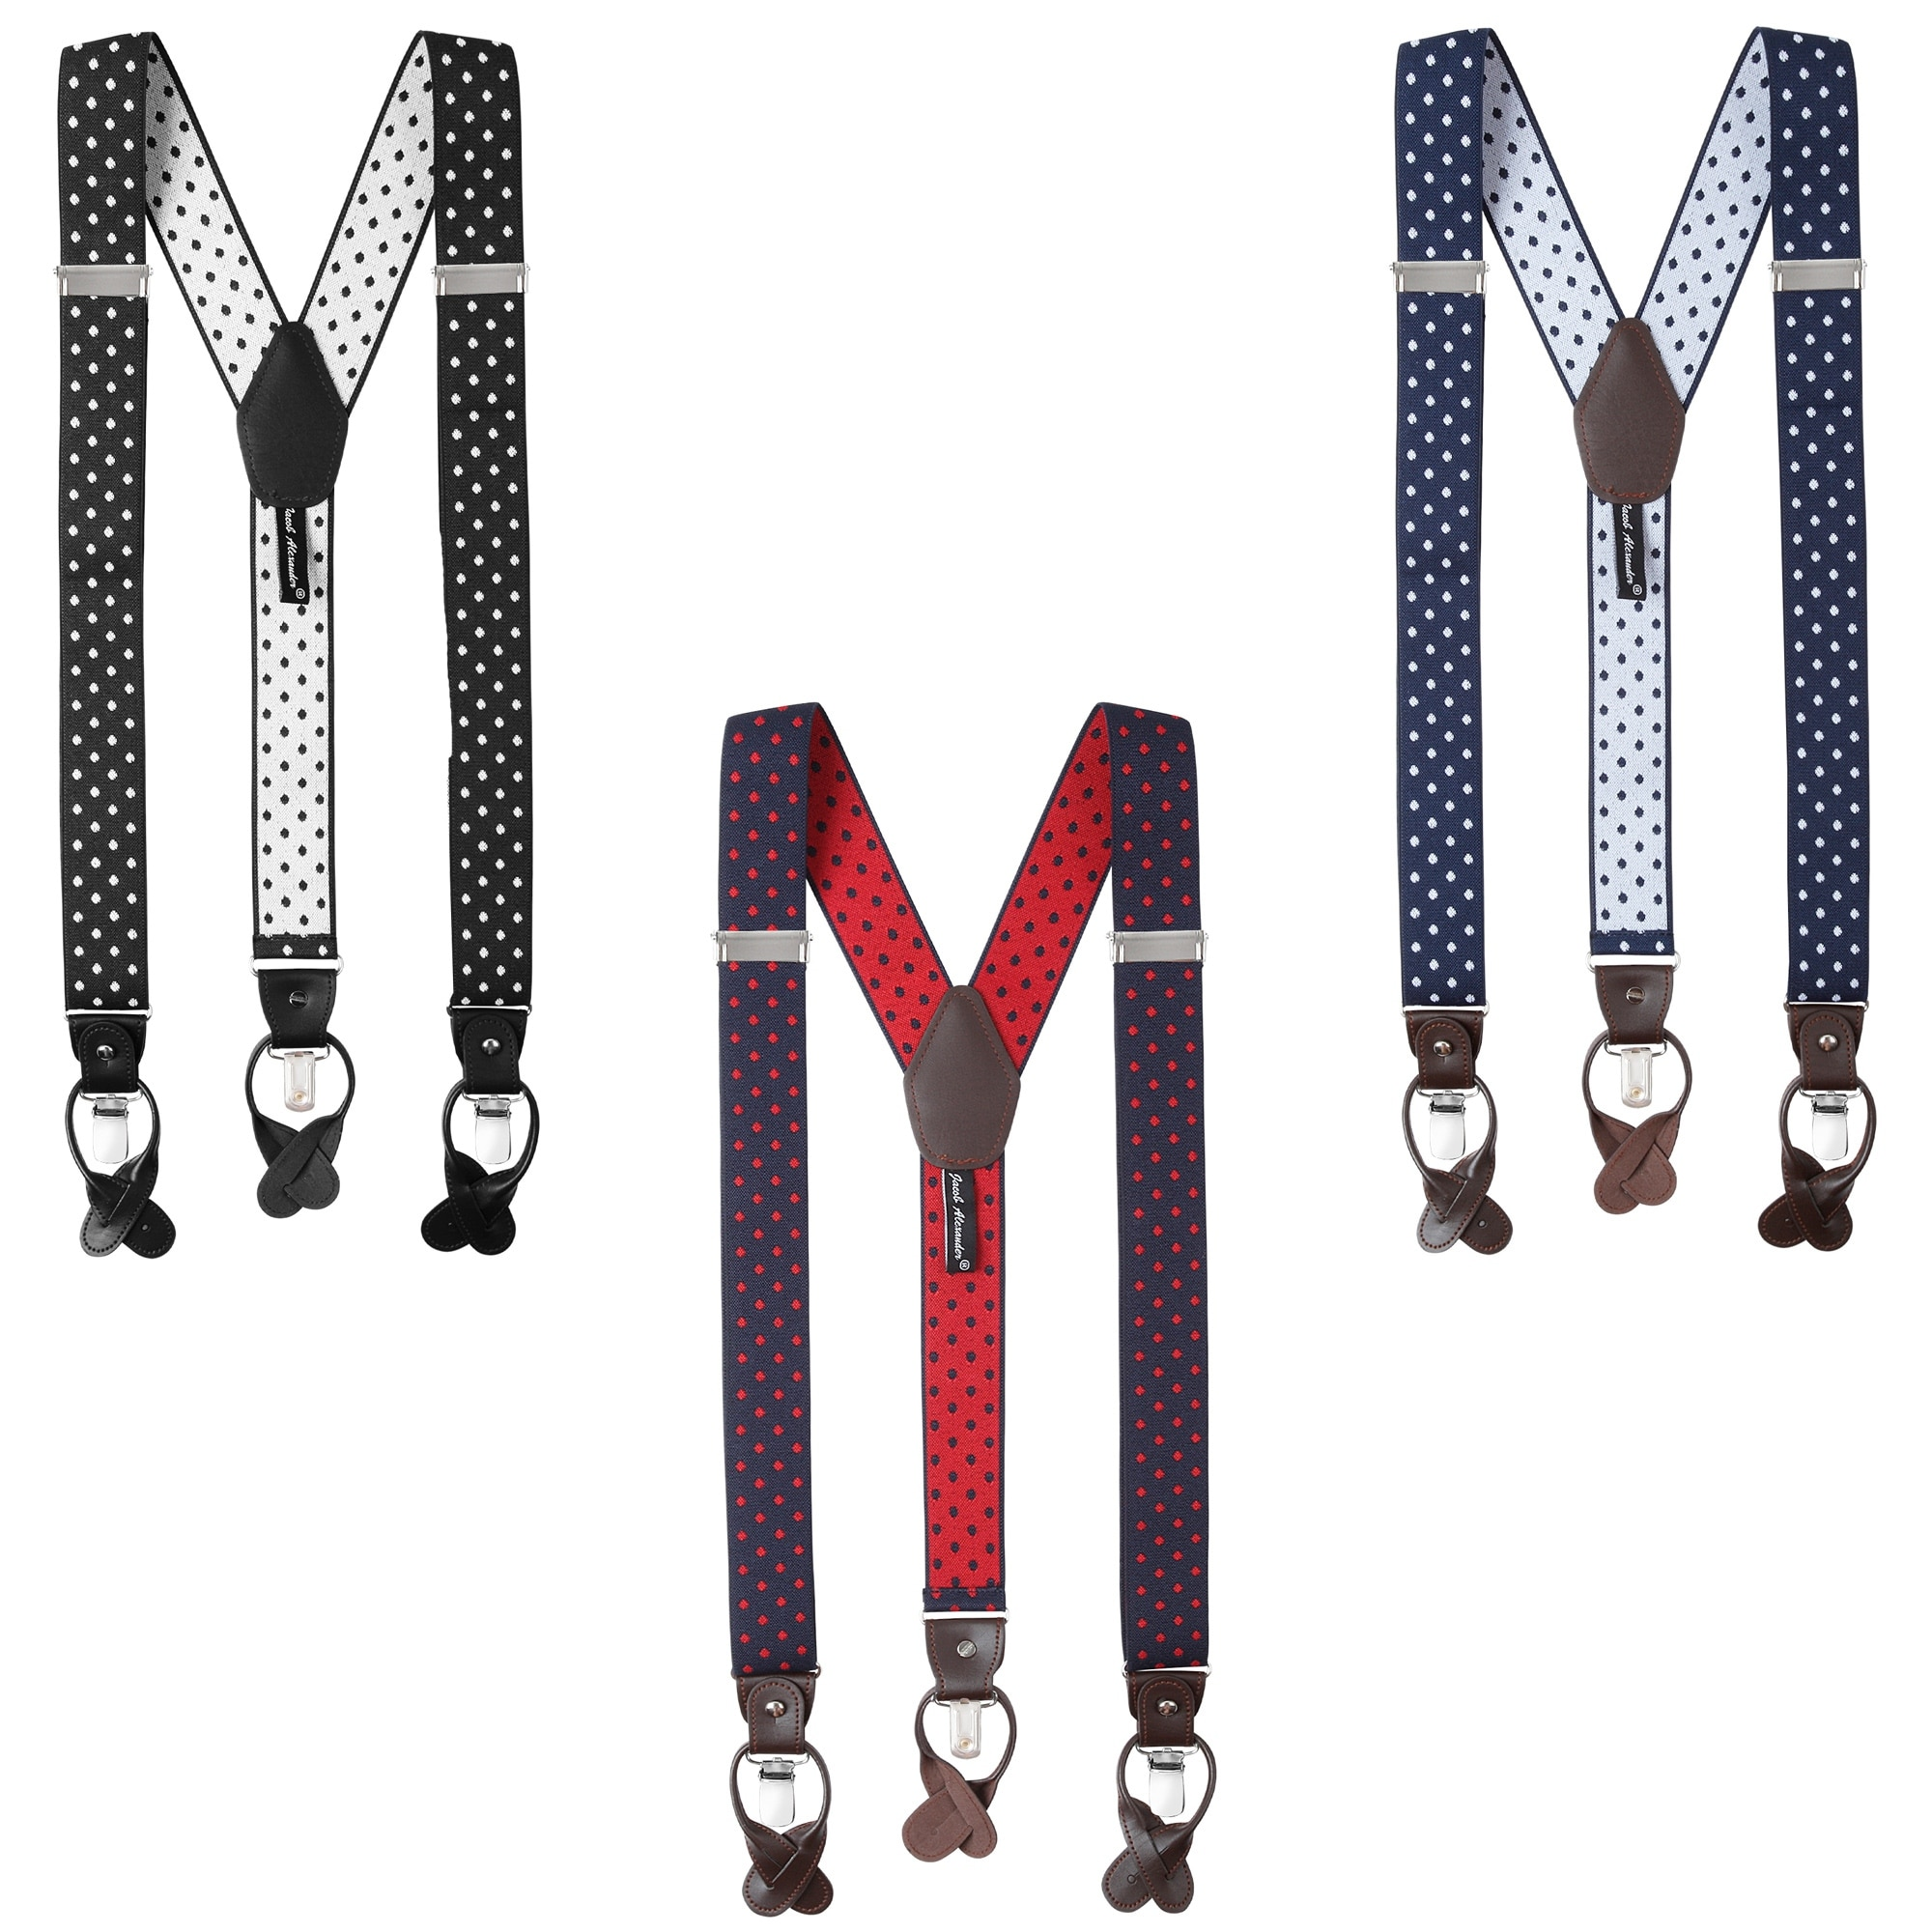 Navy White Jacob Alexander Mens Small Dots Y-Back Suspenders Braces Convertible Leather Ends Clips